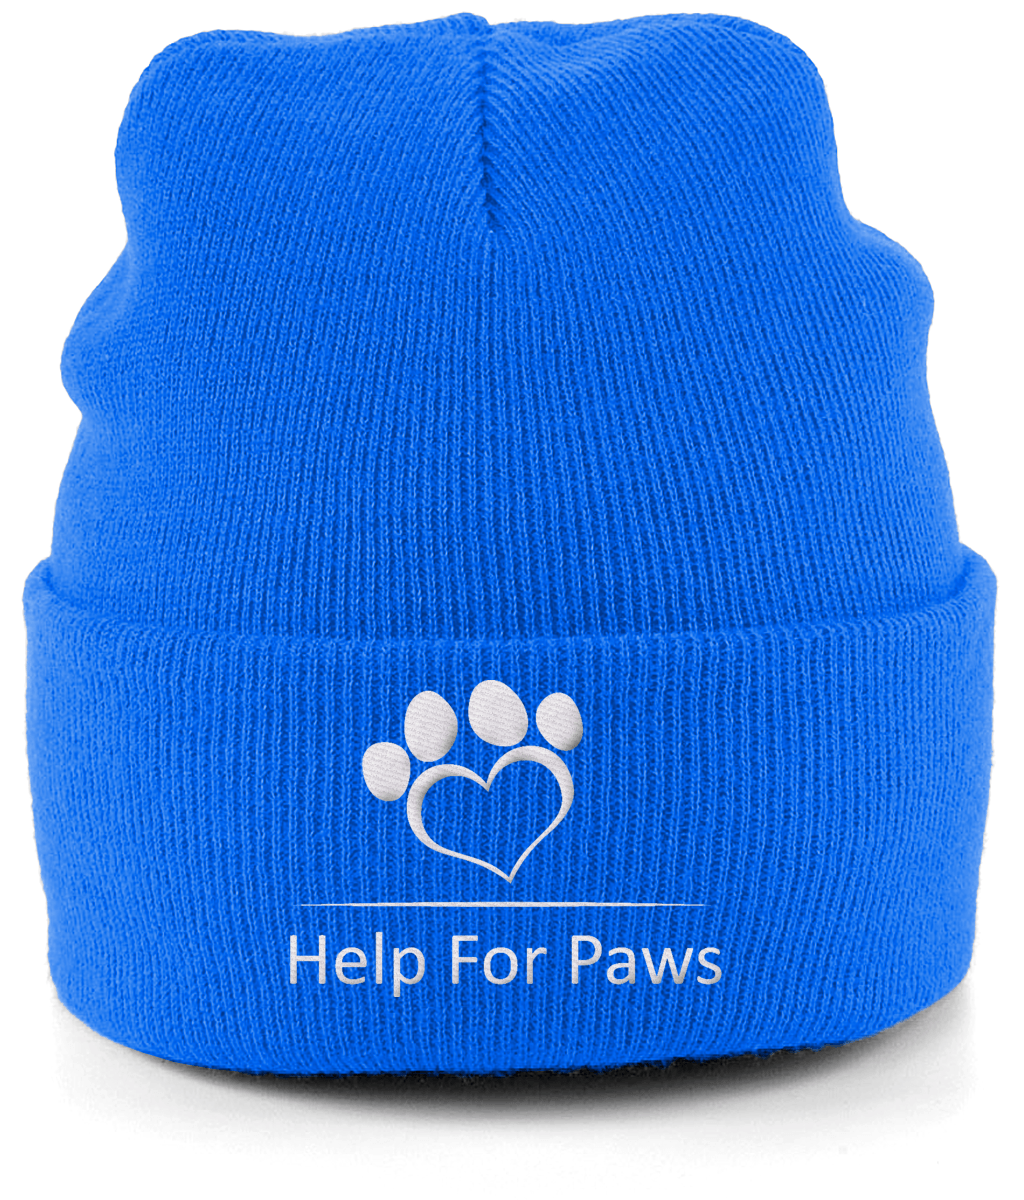 Help For Paws Beanie Woolly Hat